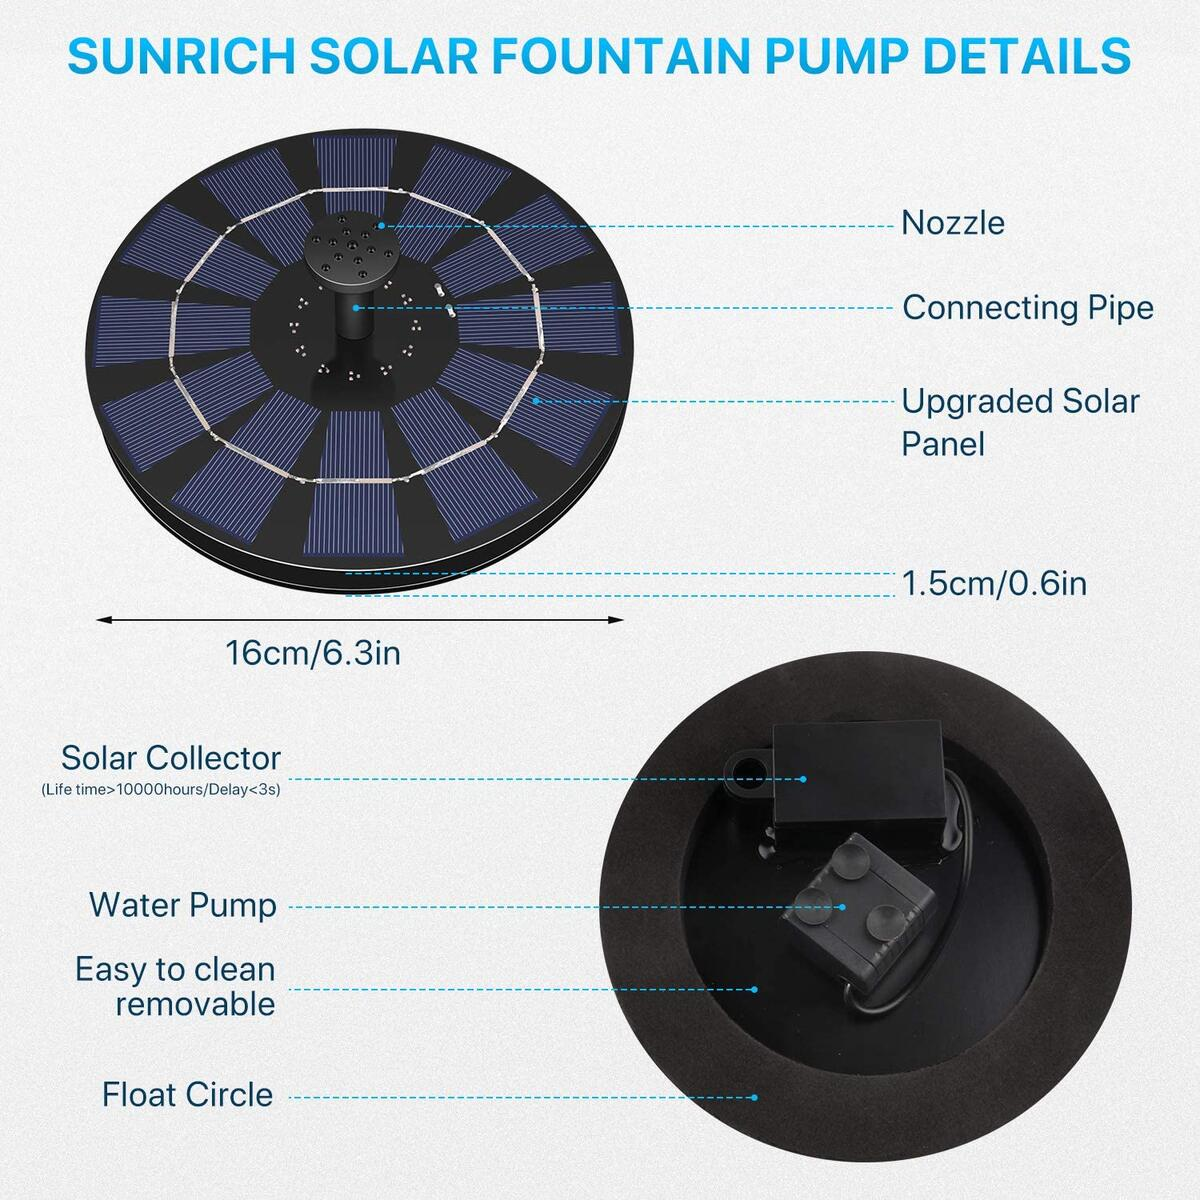 Sunrich Solar Powered Water Fountain Pump 2.5W- Bird Bath Power Fountains 1200mAh Battery Backup with 7 Nozzle, Free Standing Floating for Garden, Outdoor, Pond, Pool